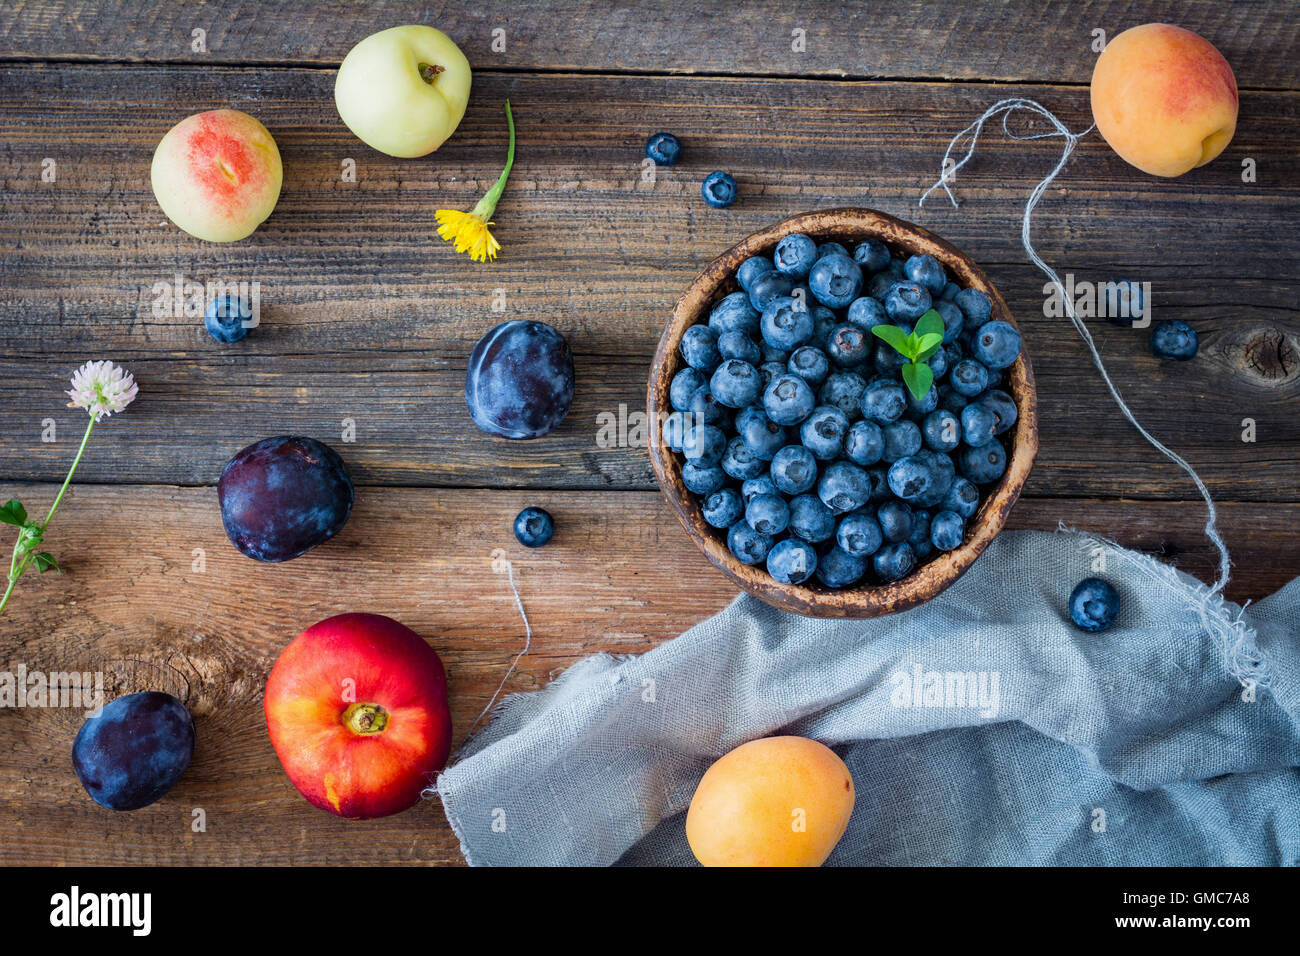 Fresh fruits on a wooden table. Top view - Stock Image